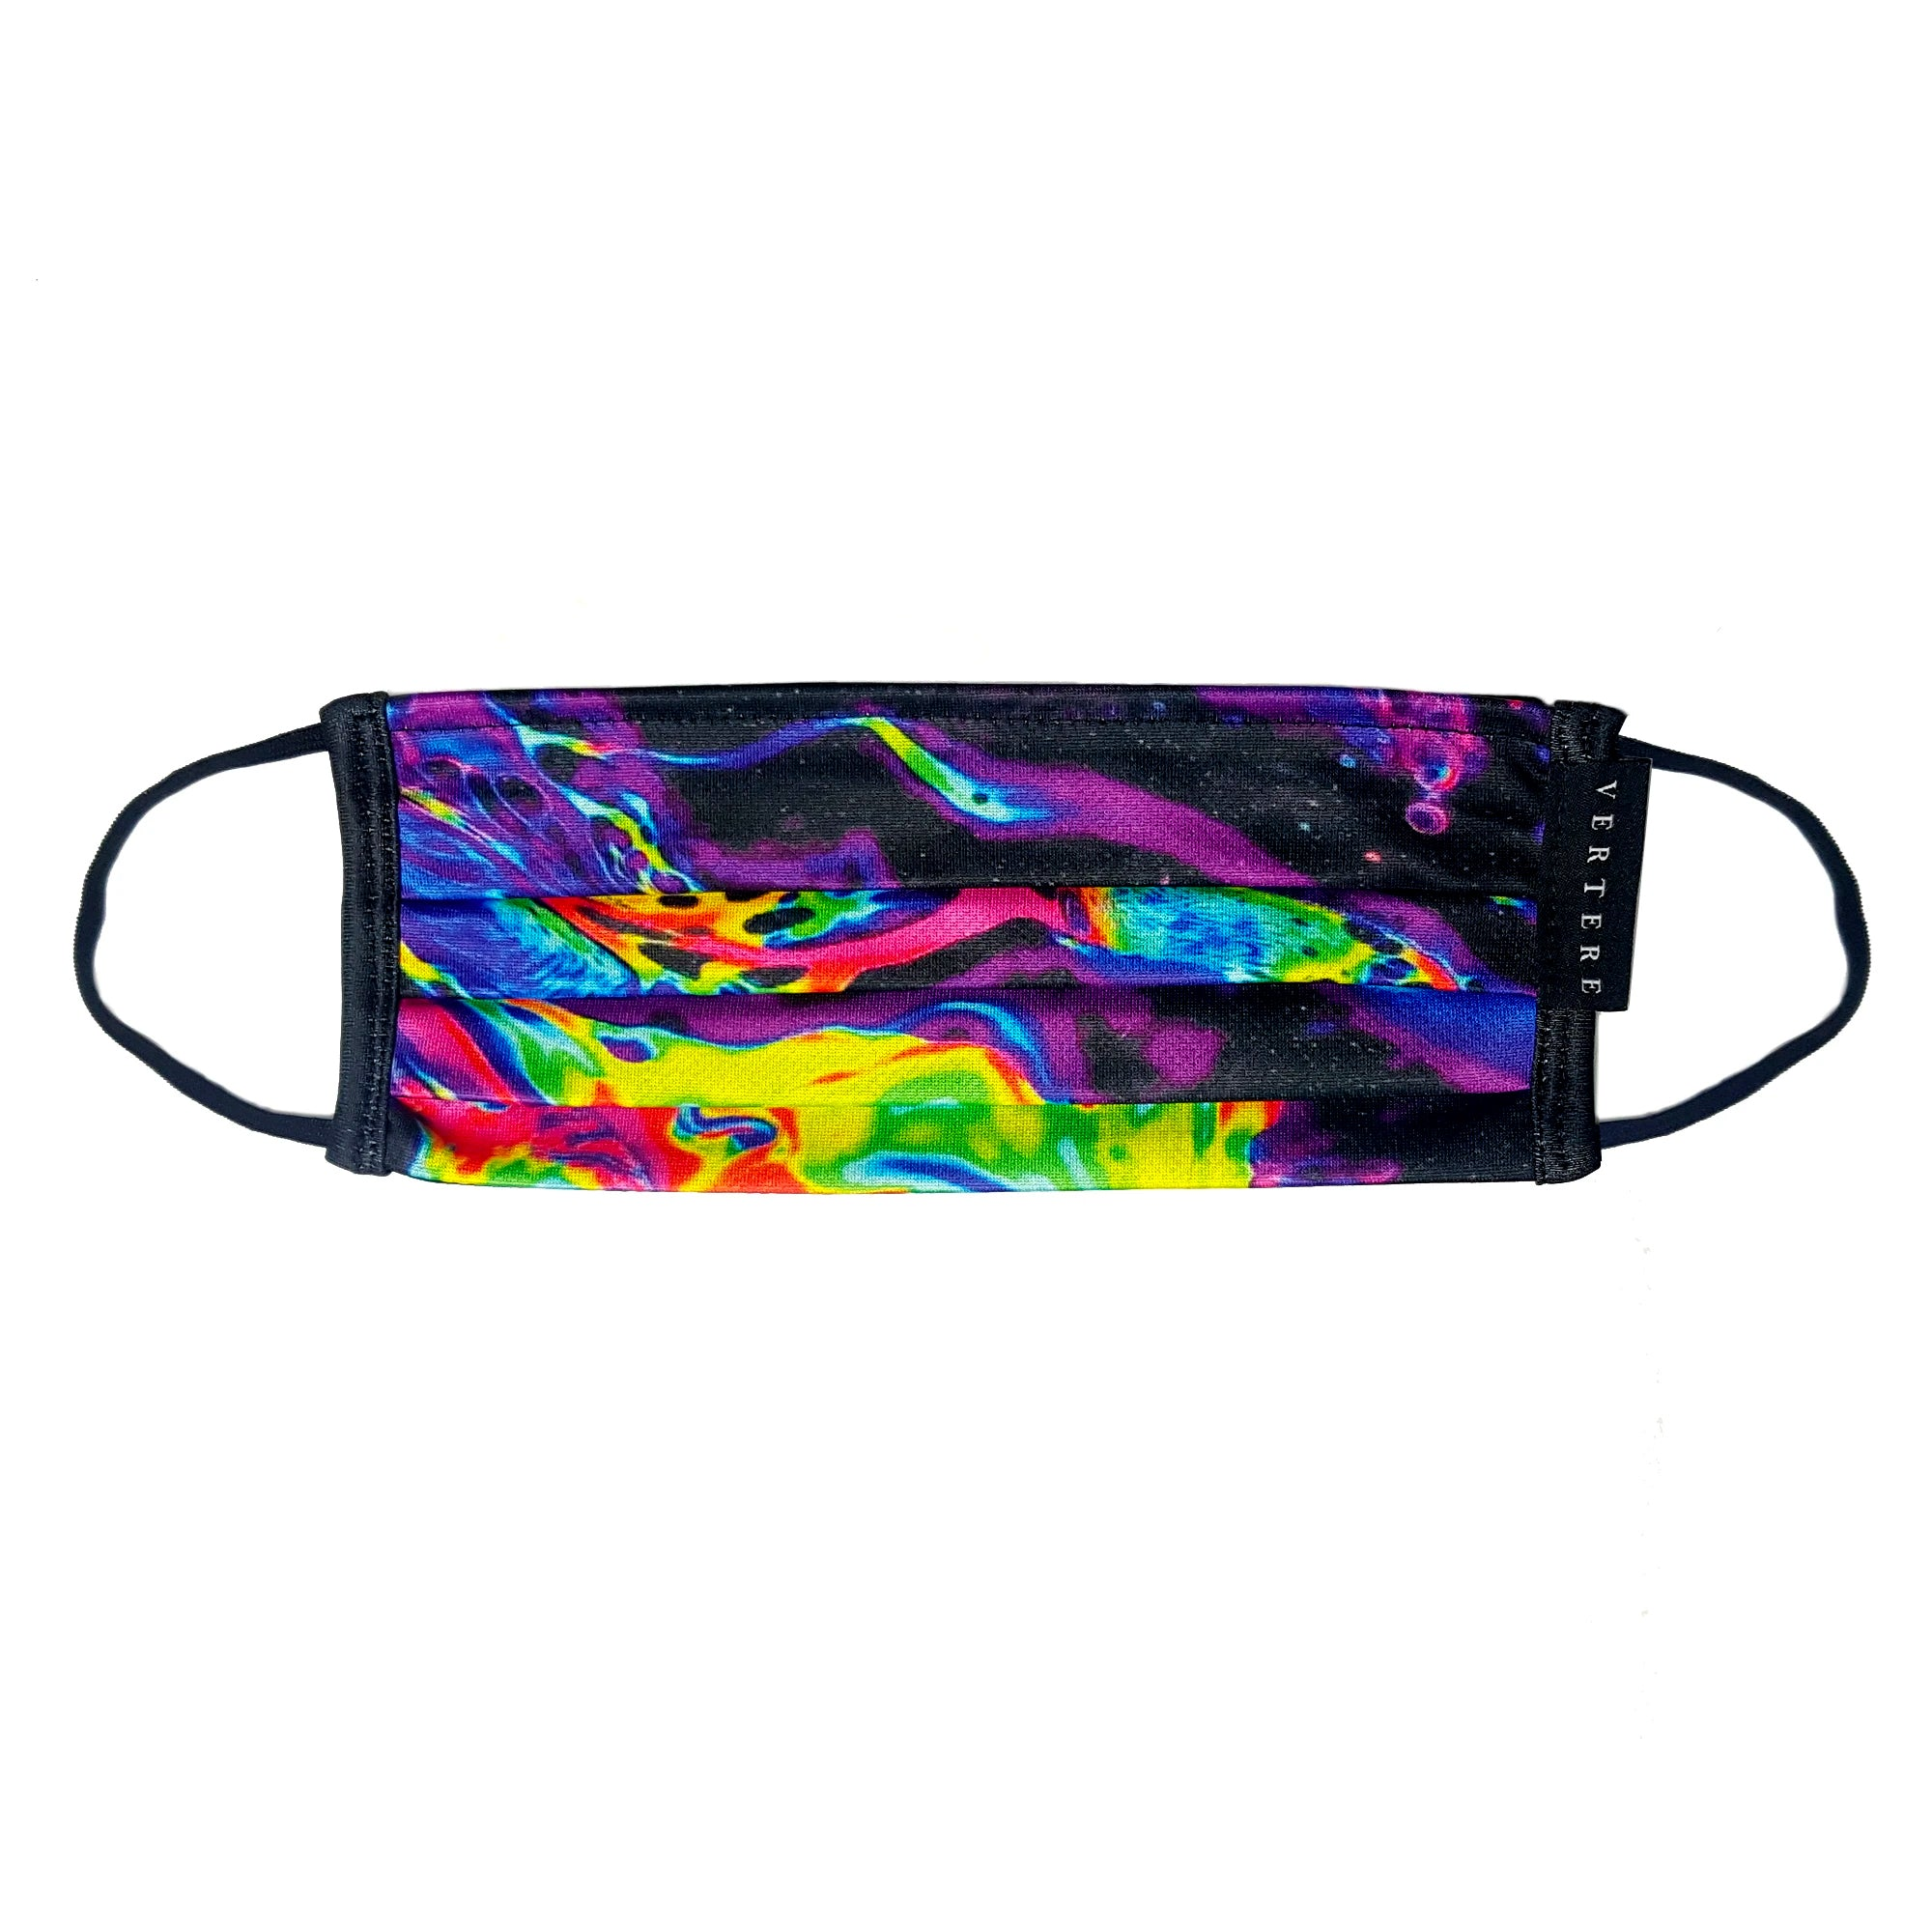 ACID PRINT FACE MASK WITH NECKBAND - MULTICOLOR